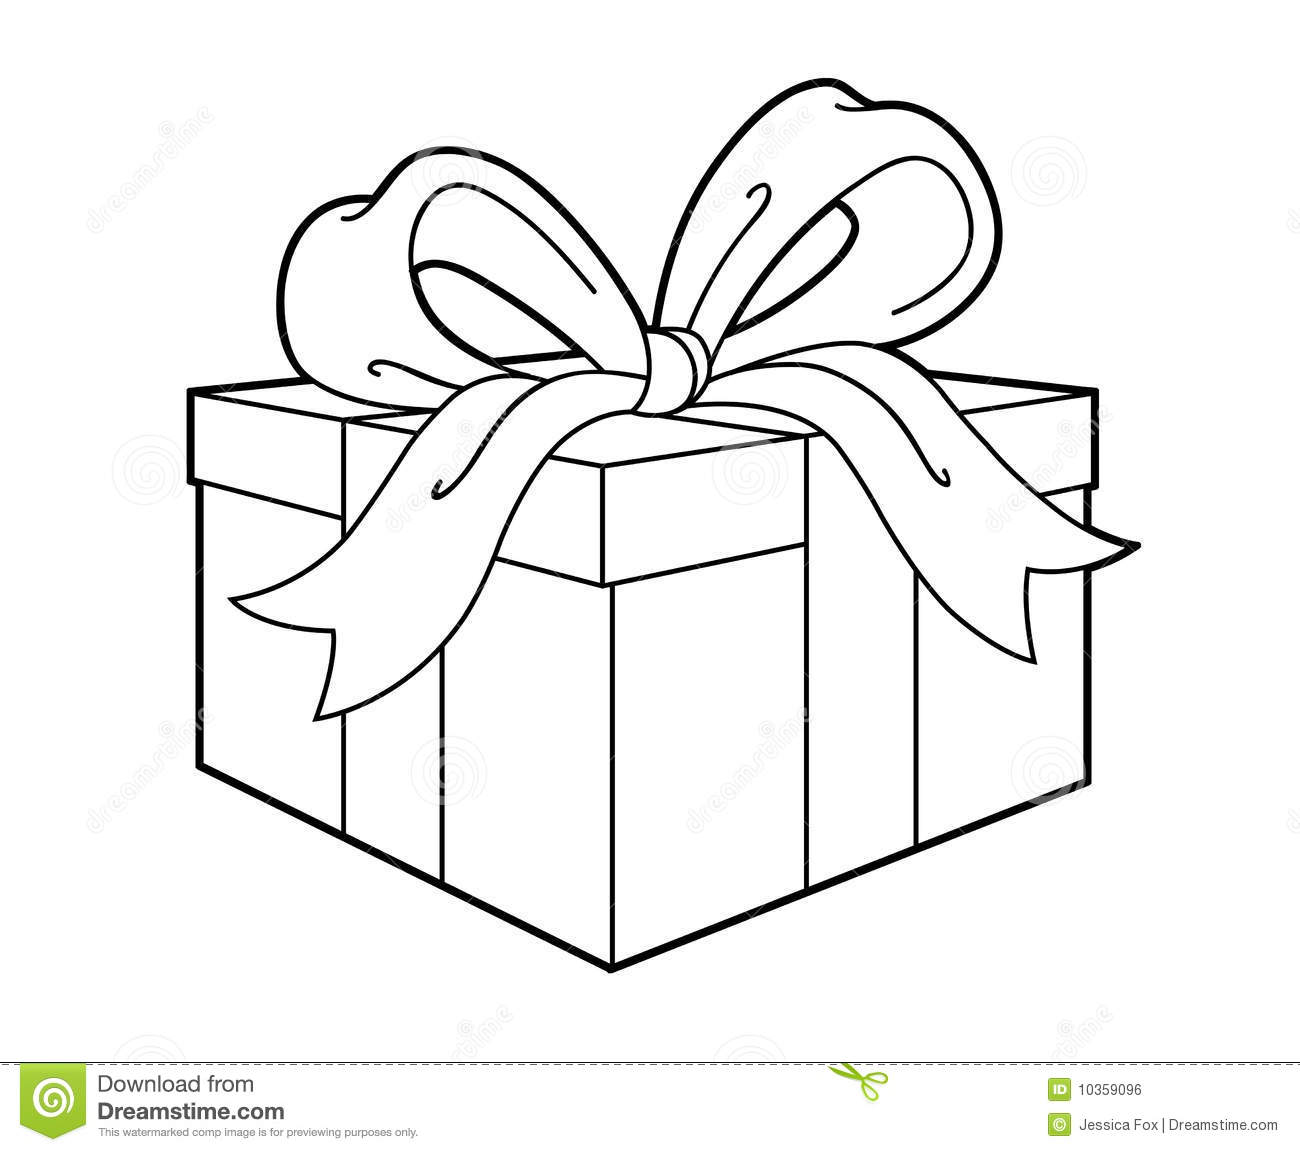 Simple Black Line Art Drawing Of A Present Or Gift Colors Can Be